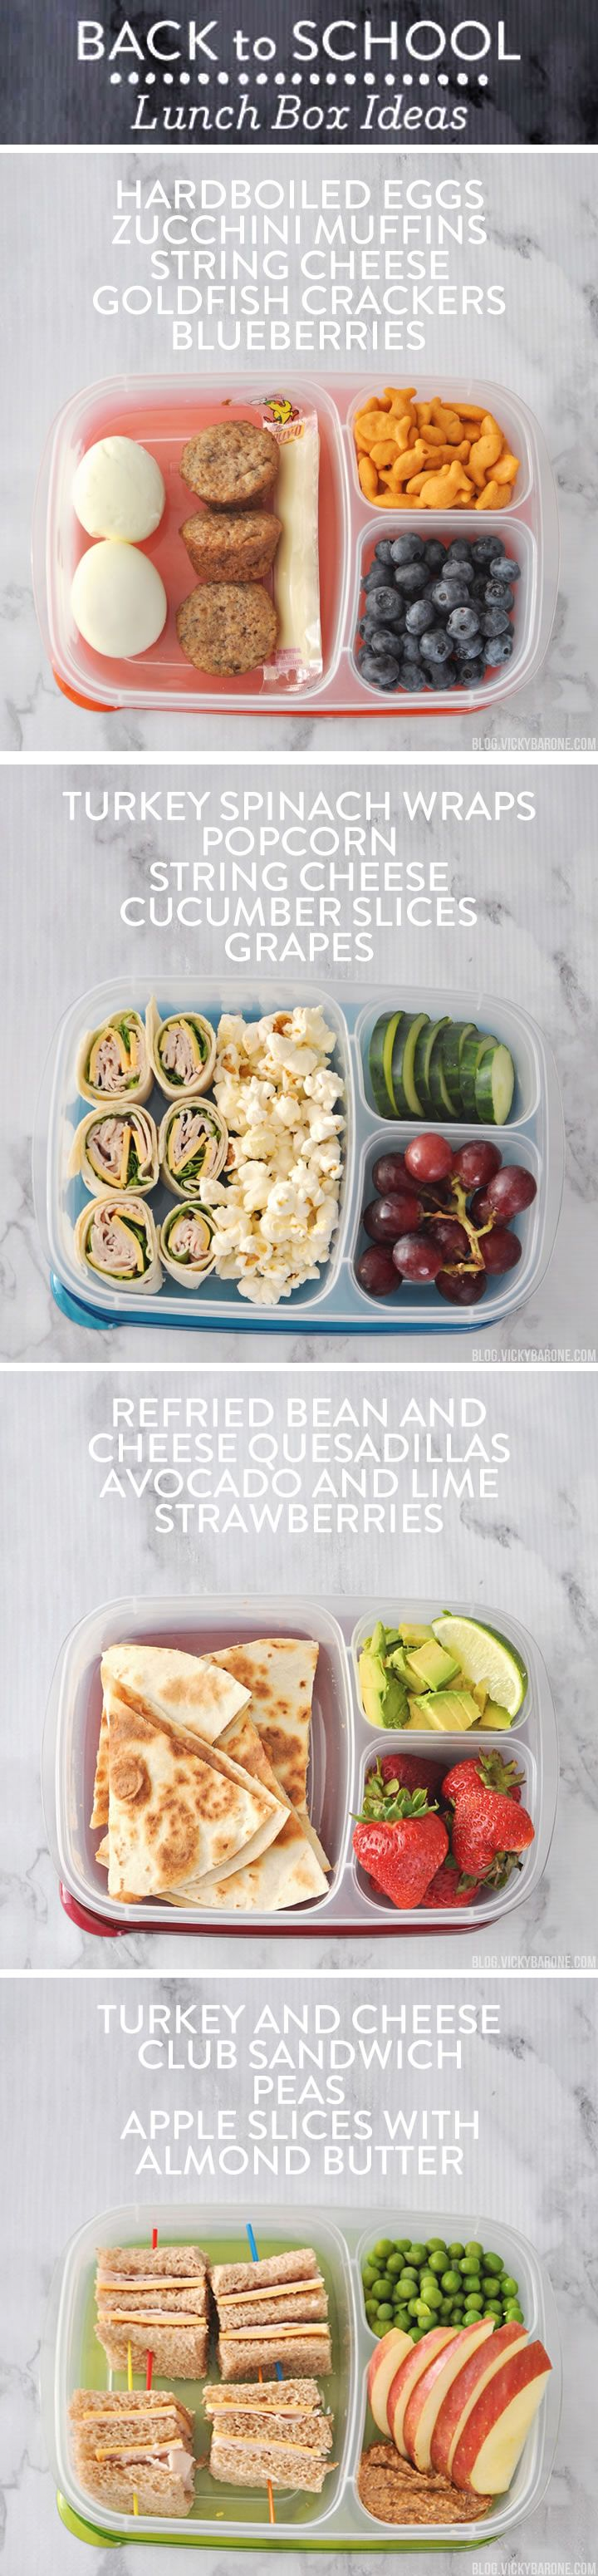 Back to school lunch box ideas to keep your kids lunches exciting and healthy.